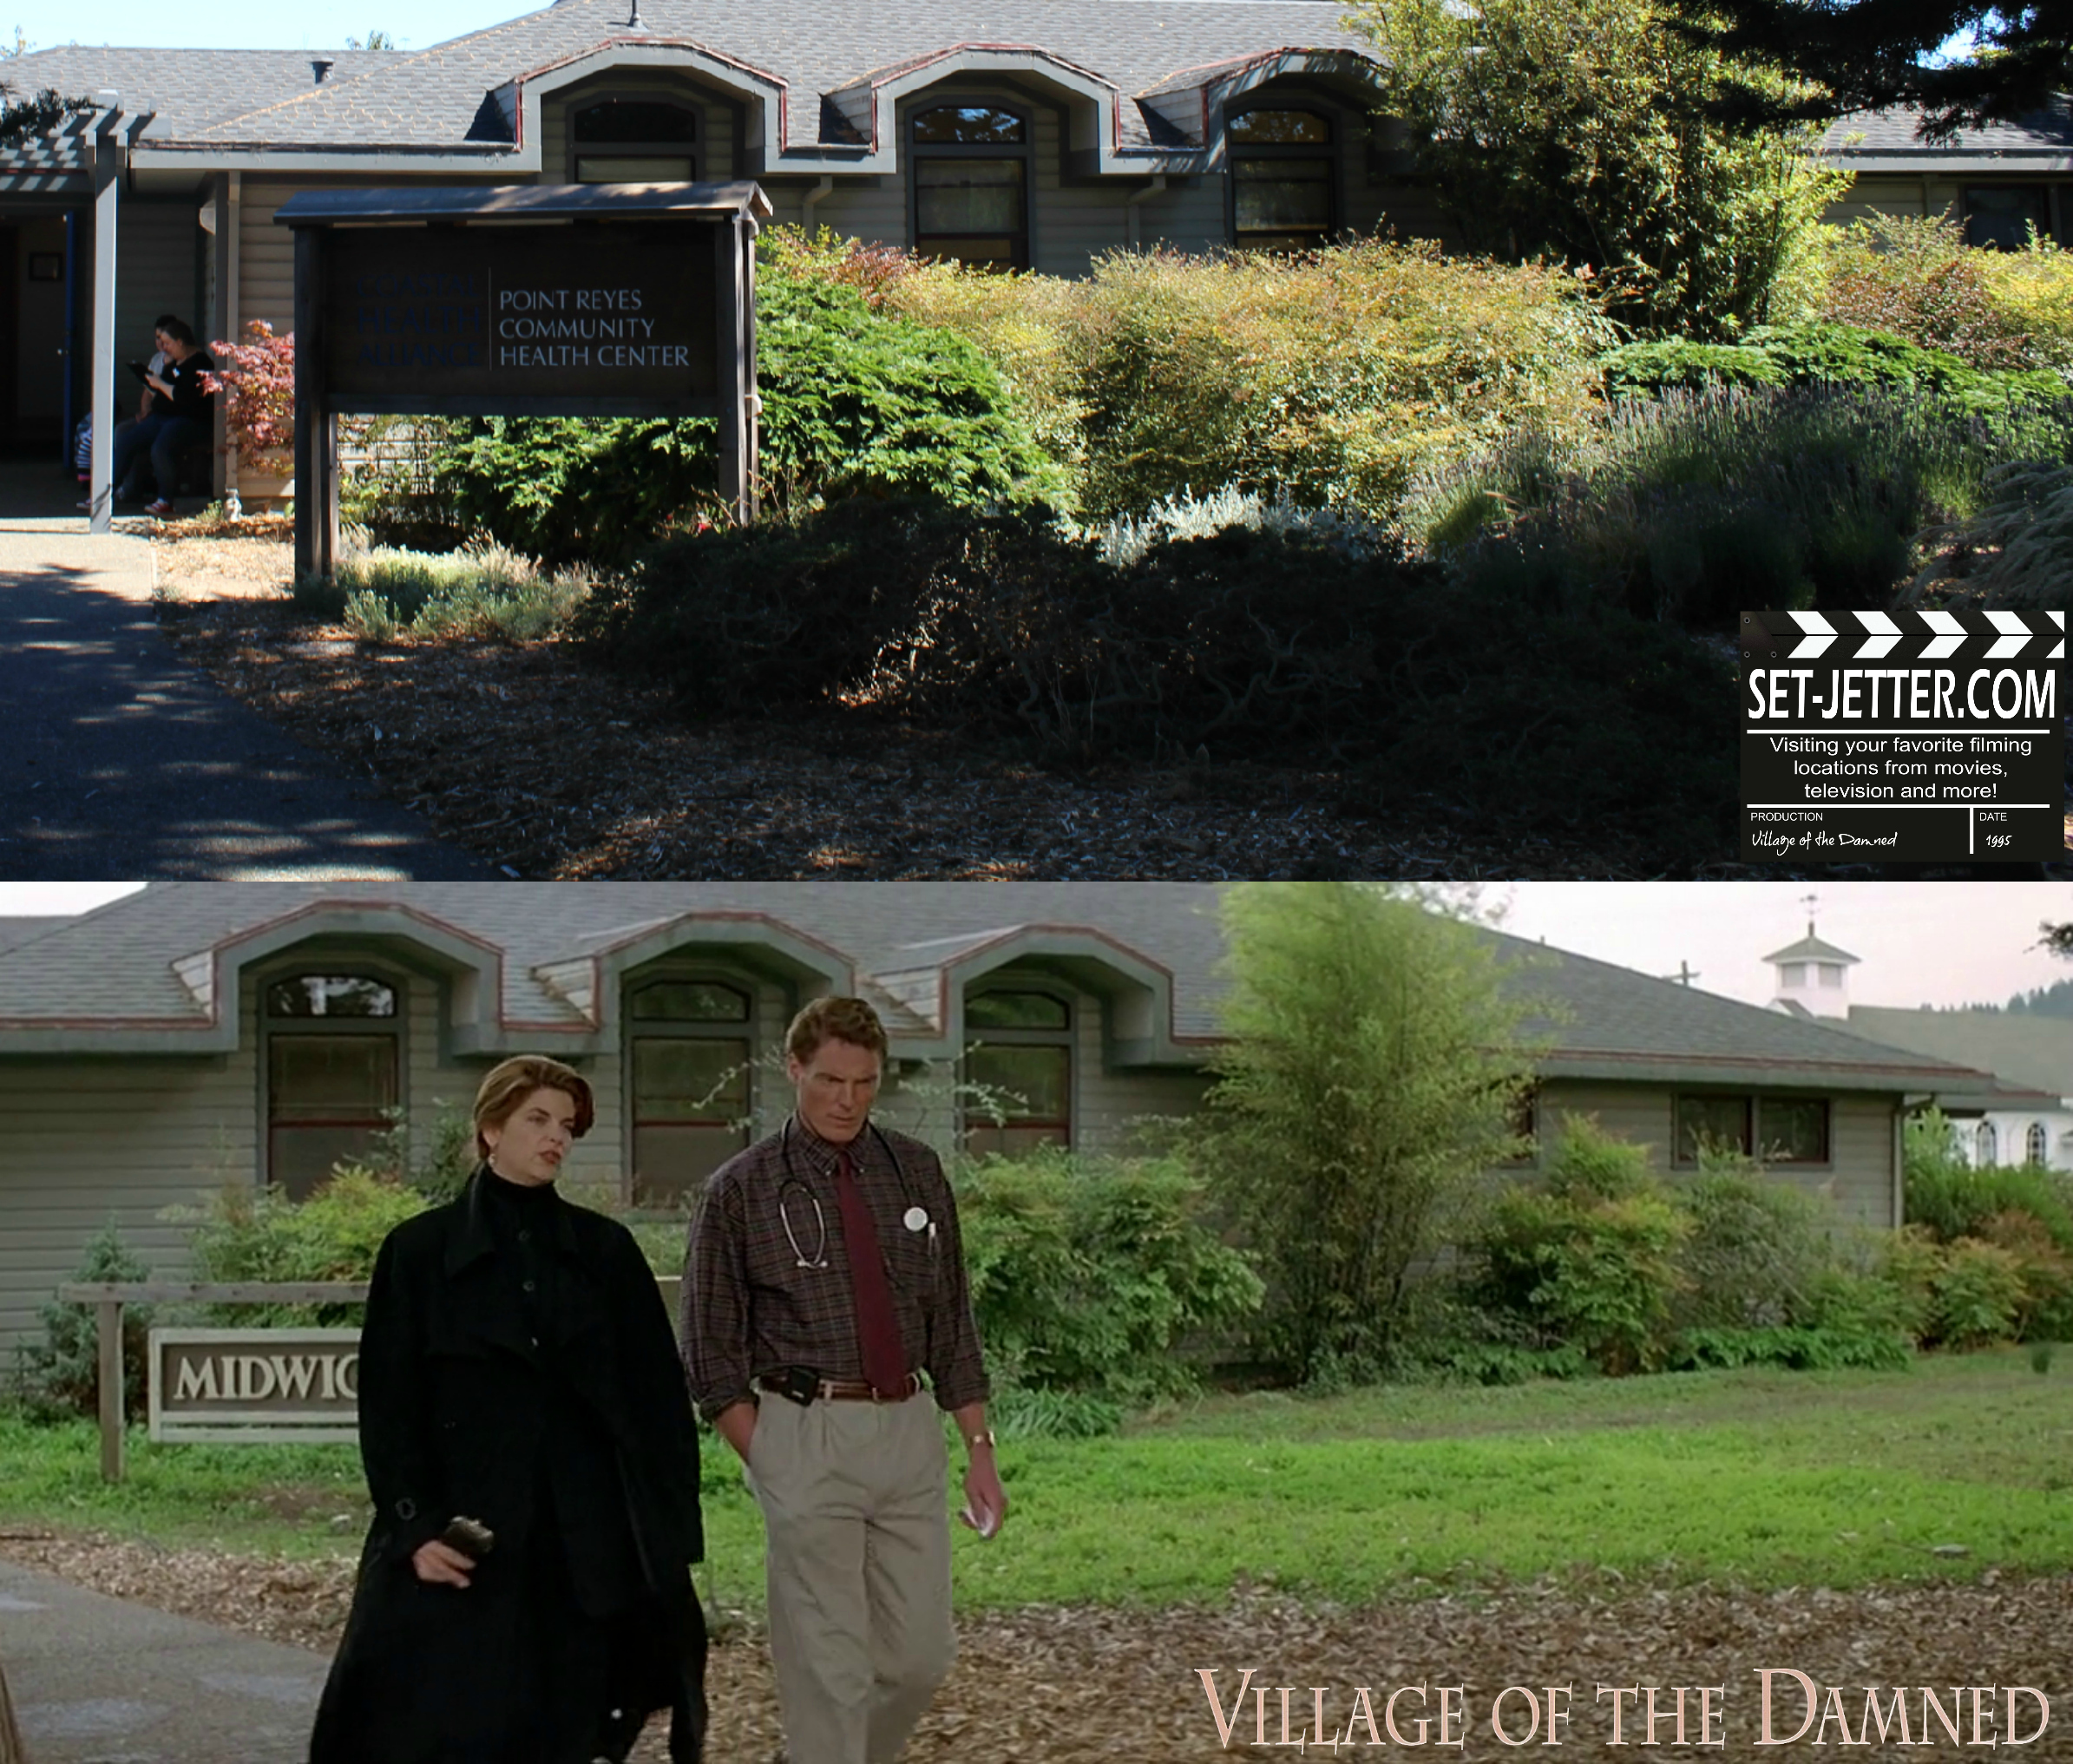 Village of the Damned comparison 120.jpg